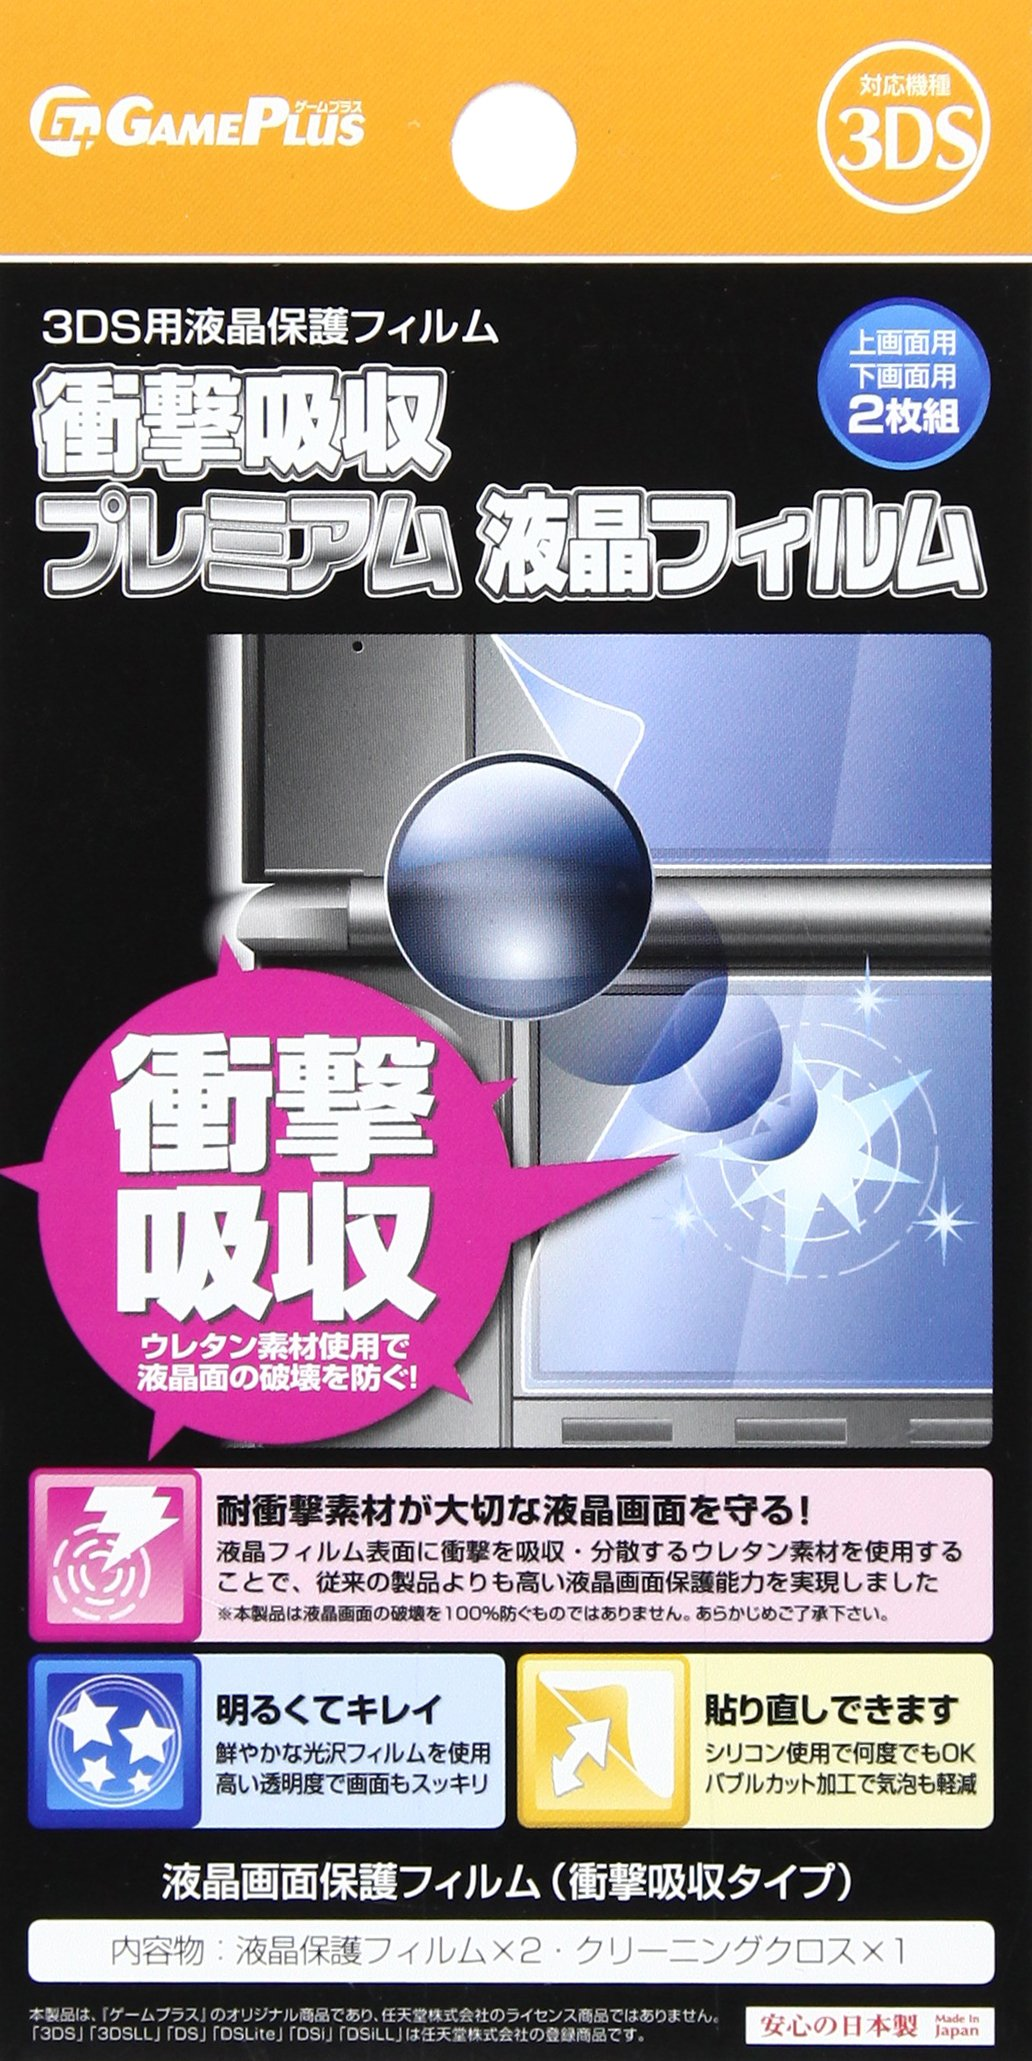 Shock absorbing film for 3DS